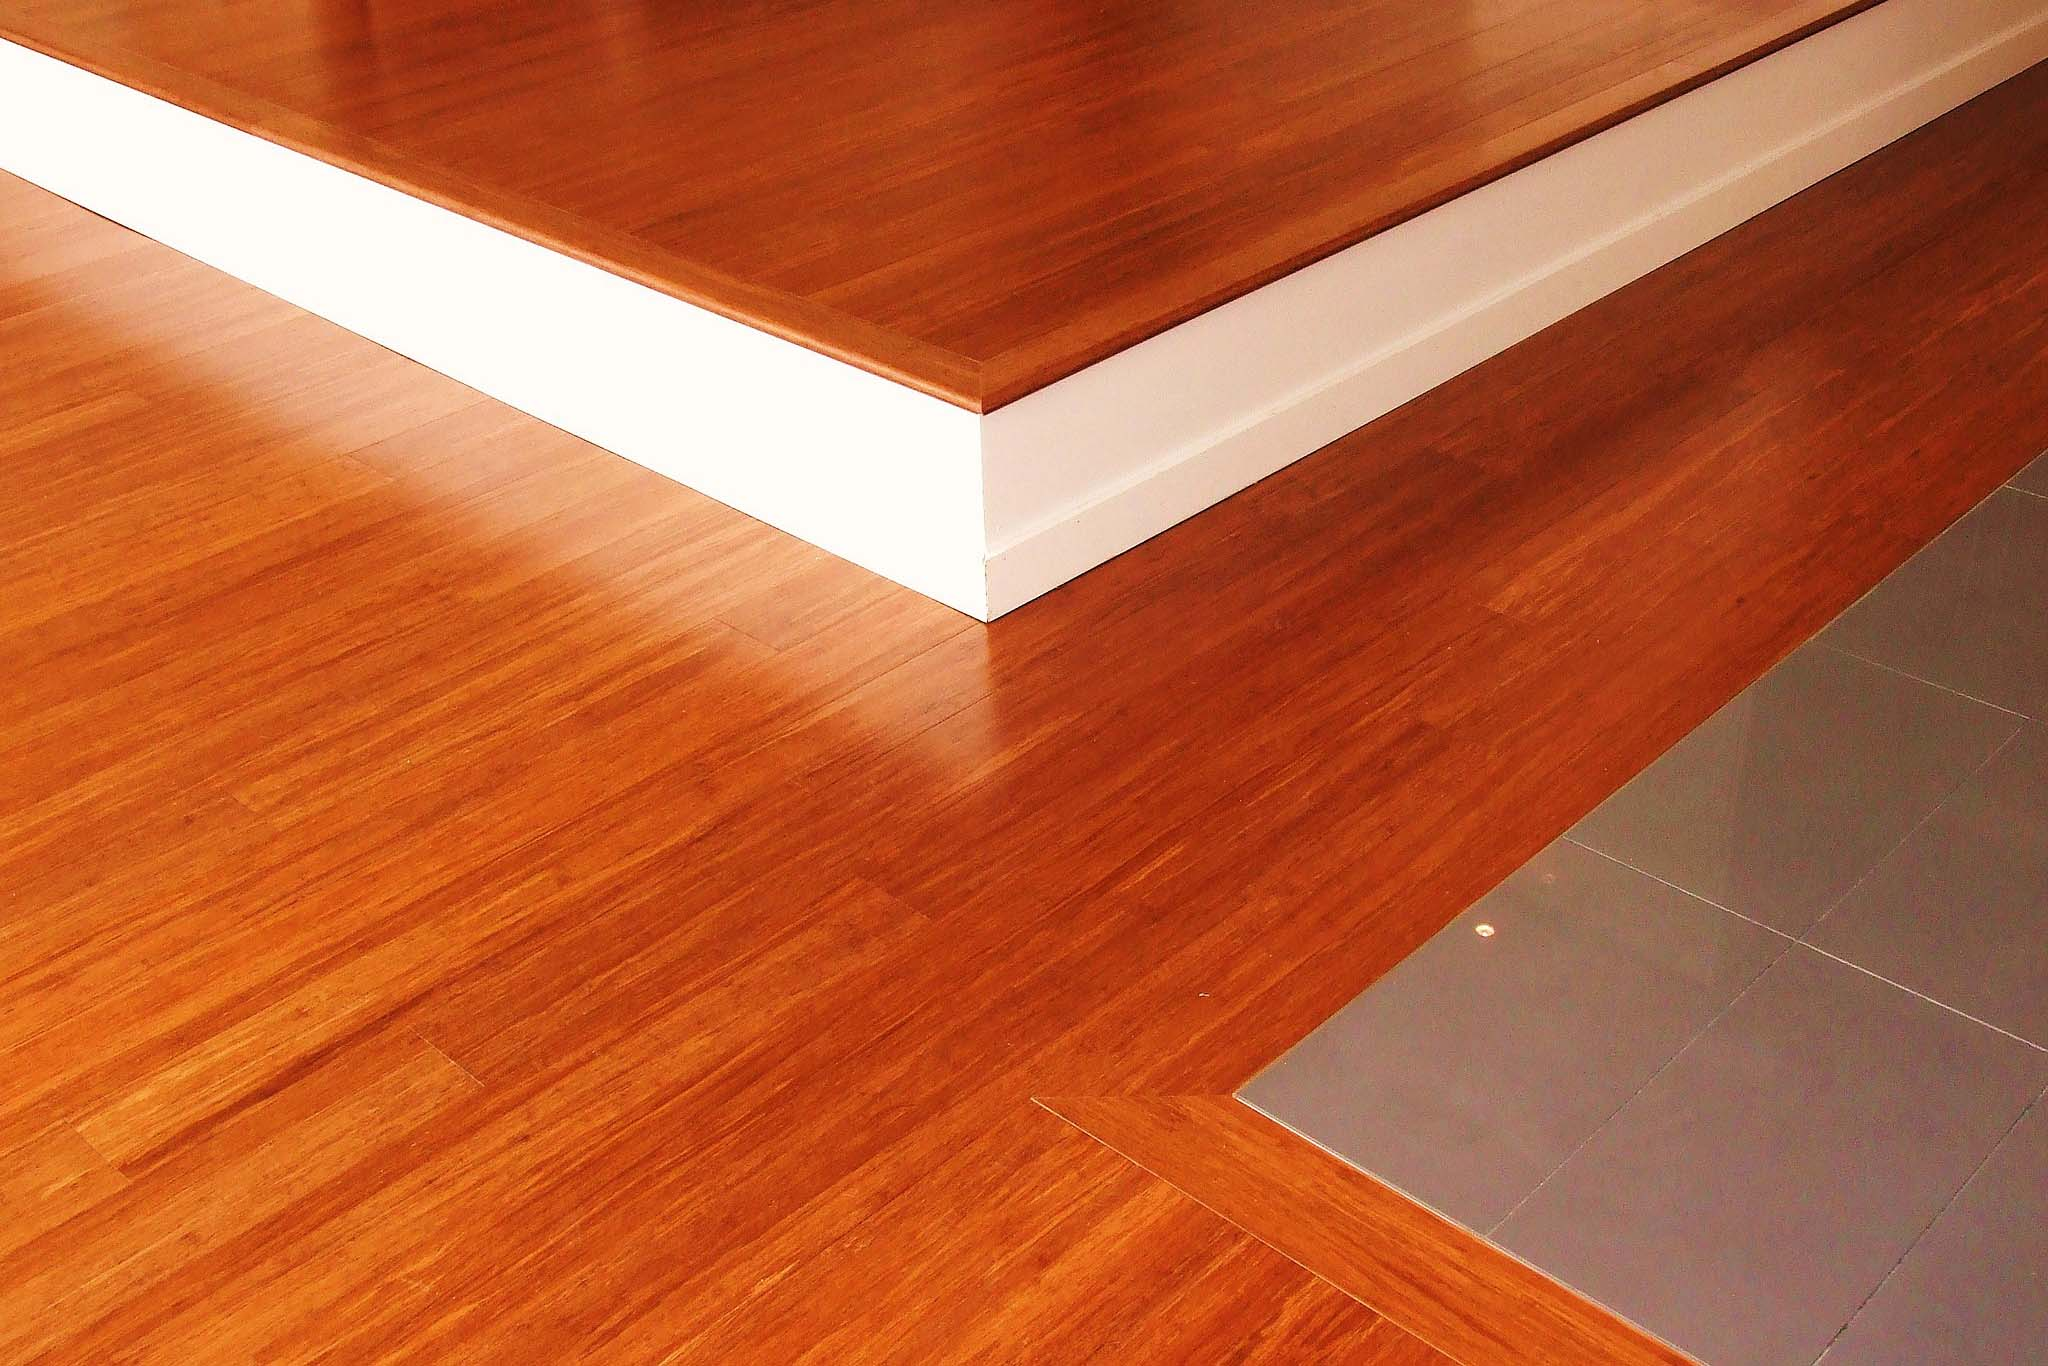 Eco-friendly bamboo flooring in a reddish hue